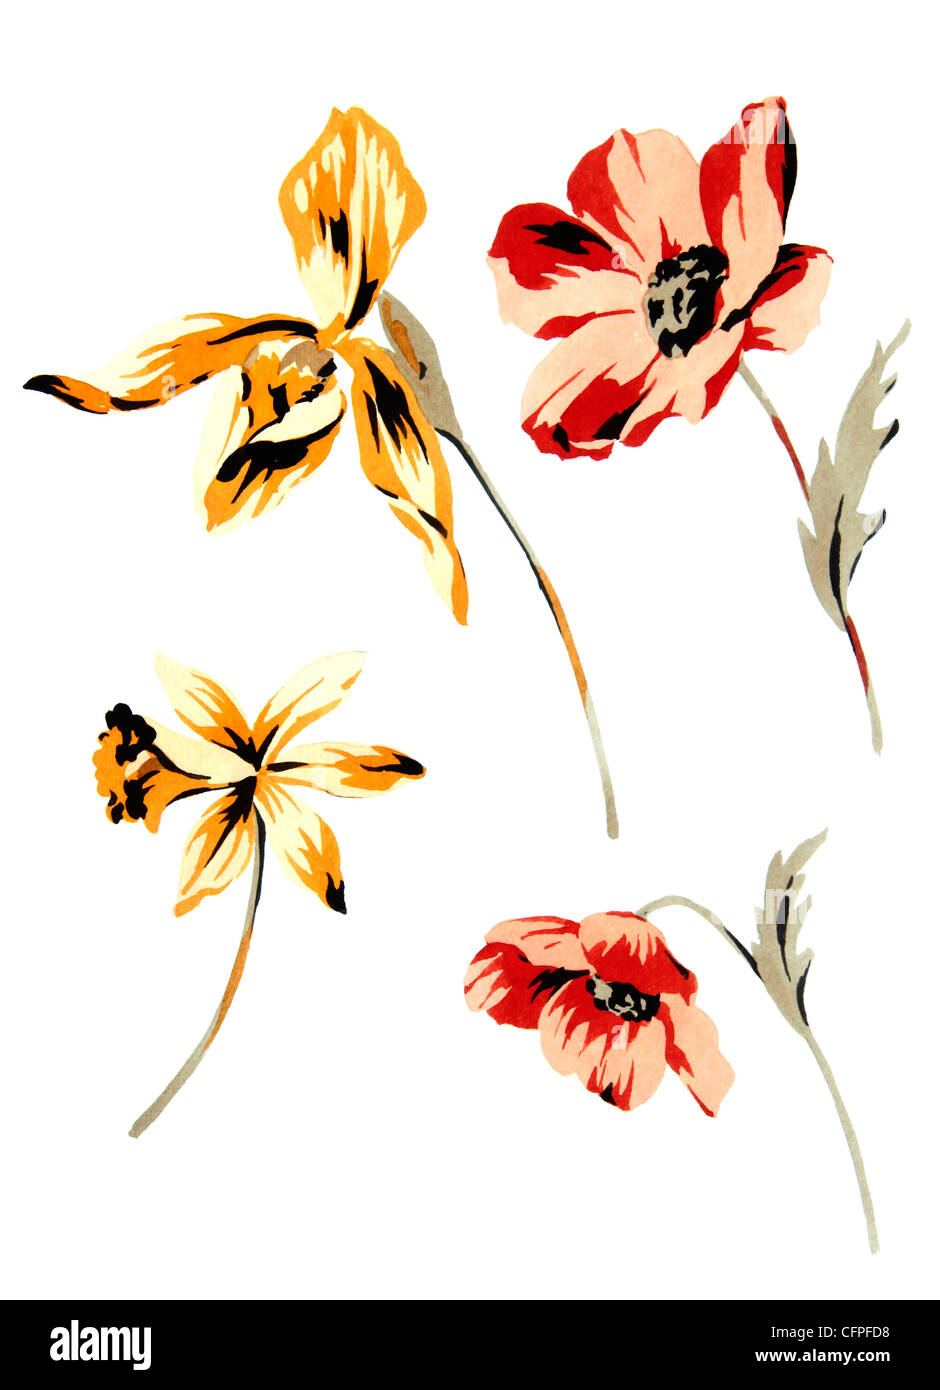 Color illustration of flowers in watercolor paintings - Stock Image